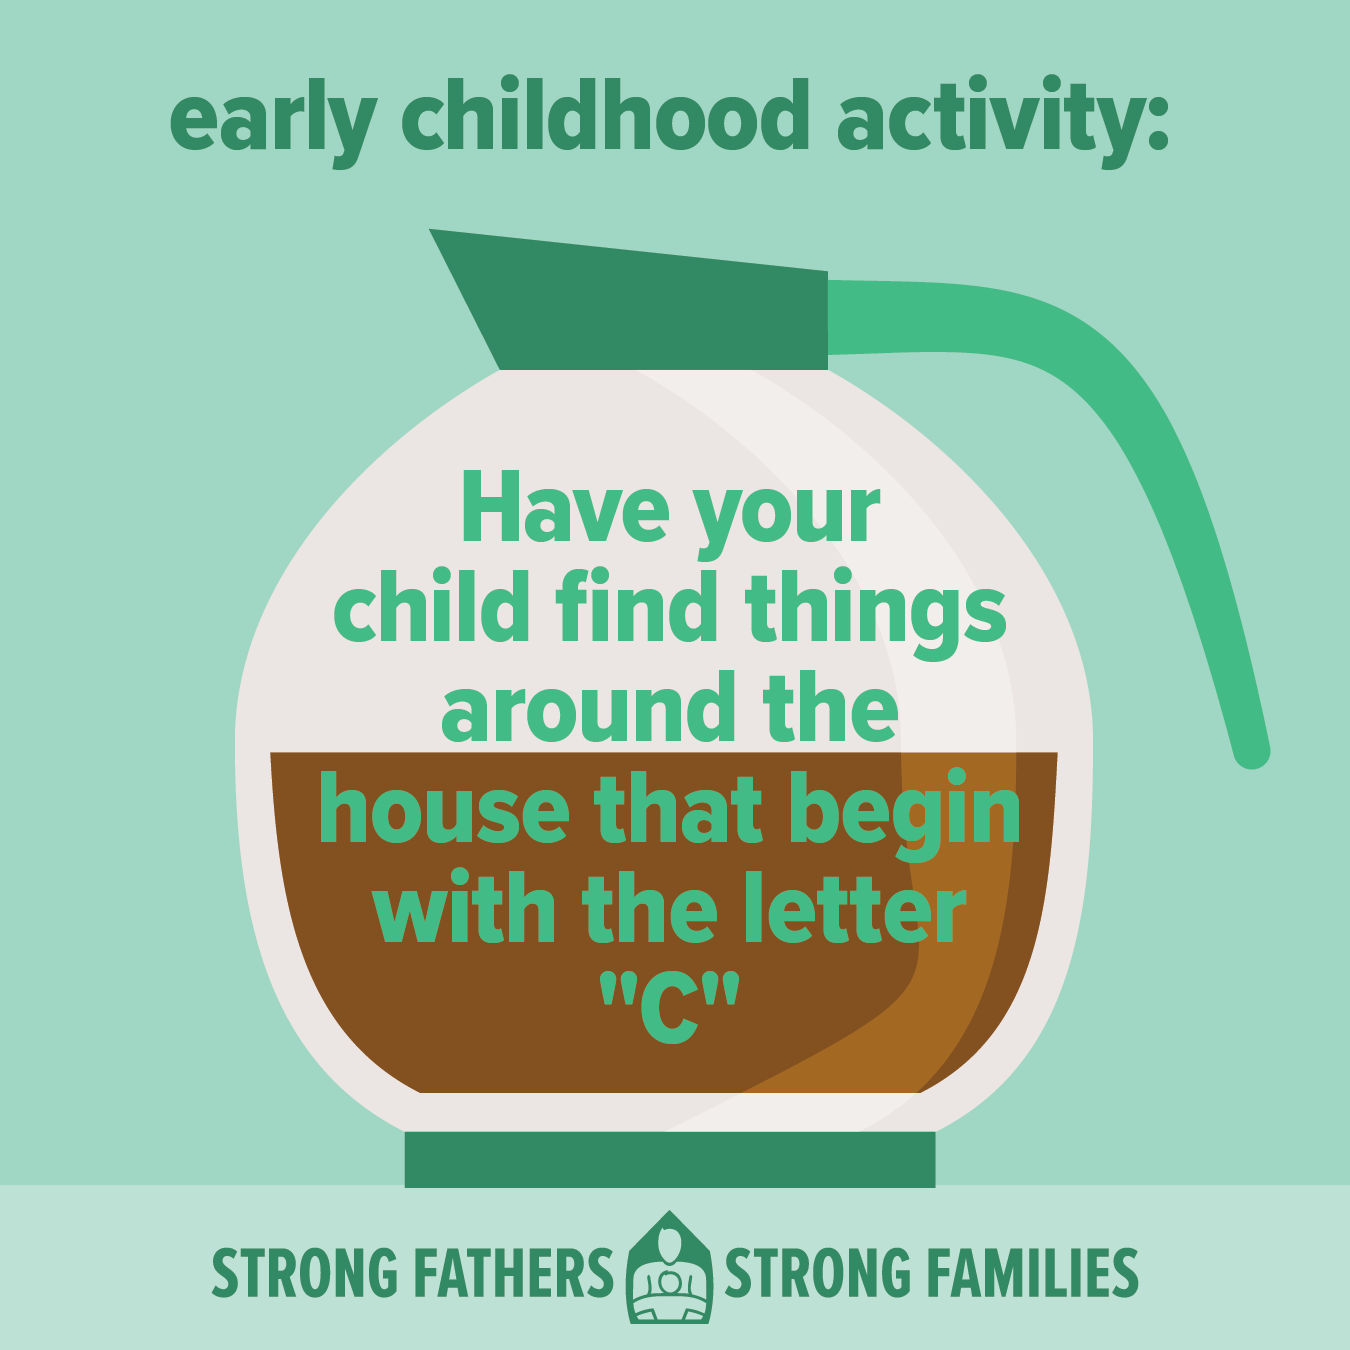 Have your child find things around the house that begin with the letter C.